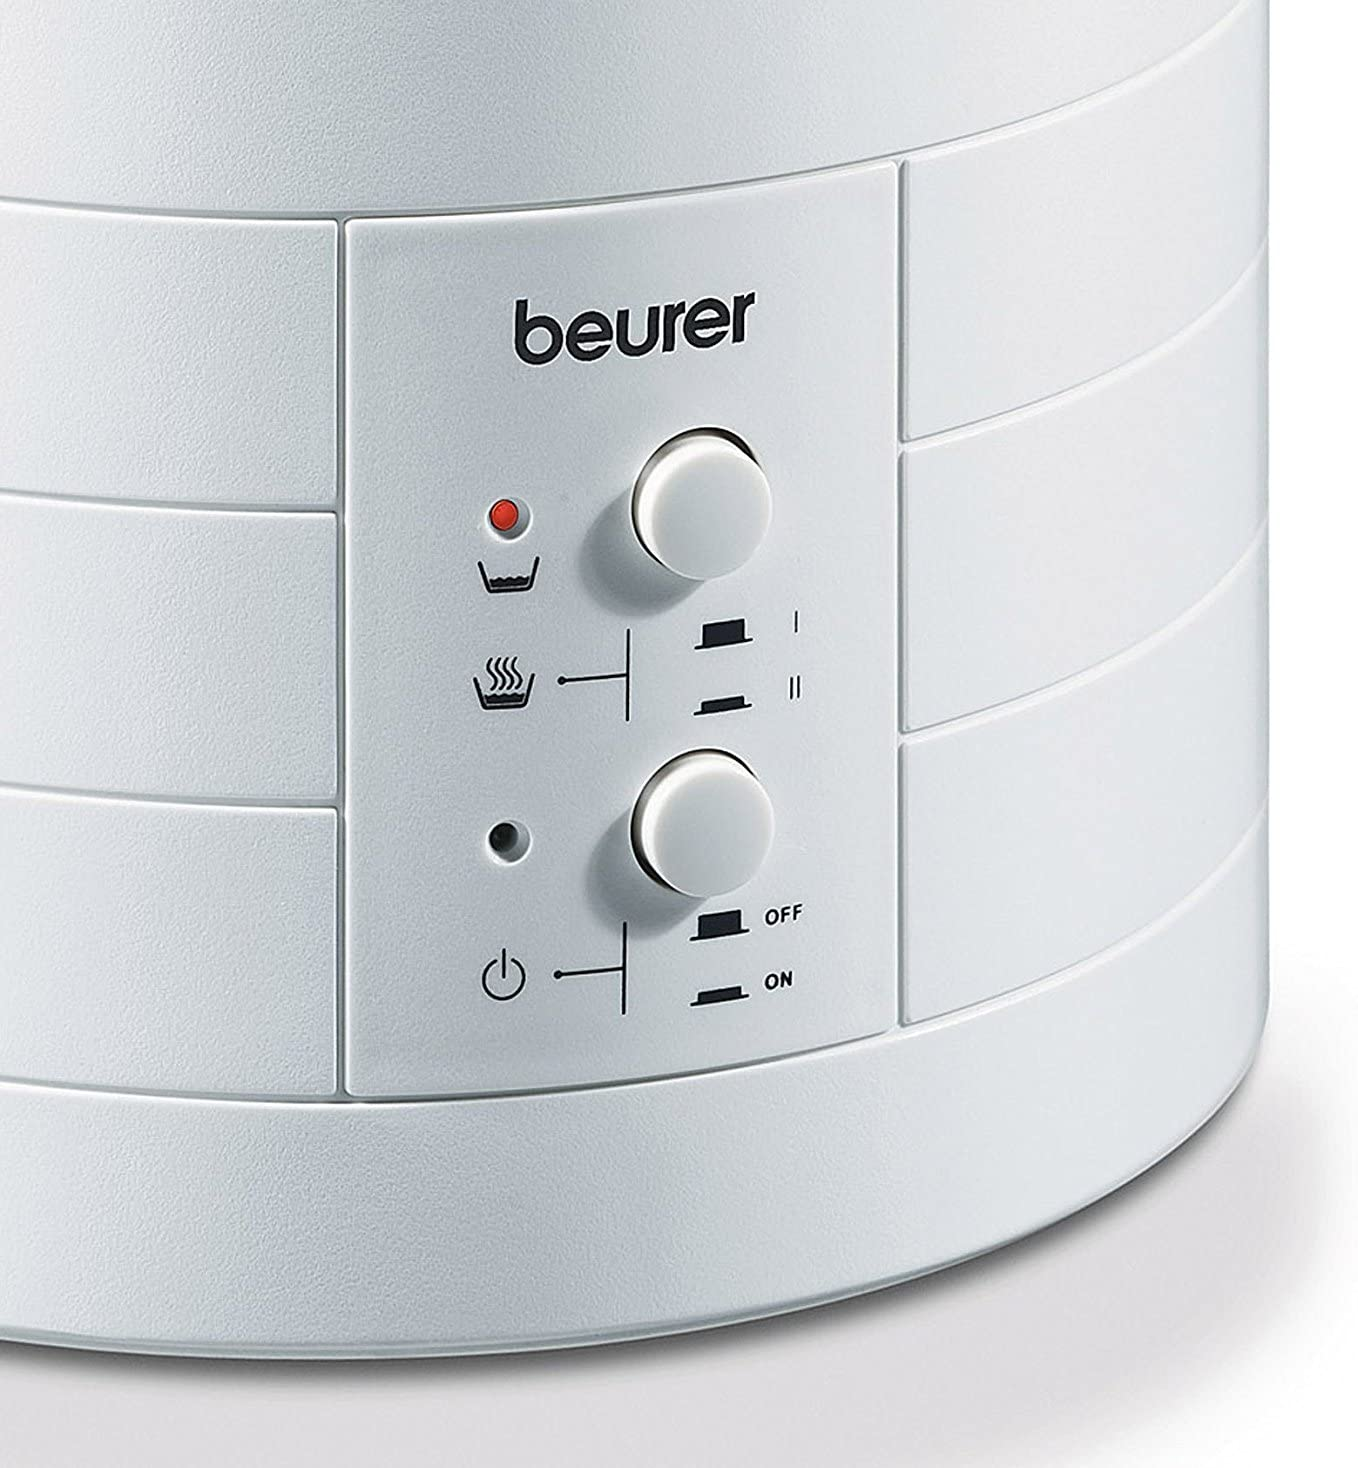 Beurer LB 50 humidifier, with Water vapourisation in 2 Stages, for Rooms up  to 40 sqm: Amazon.co.uk: DIY & Tools